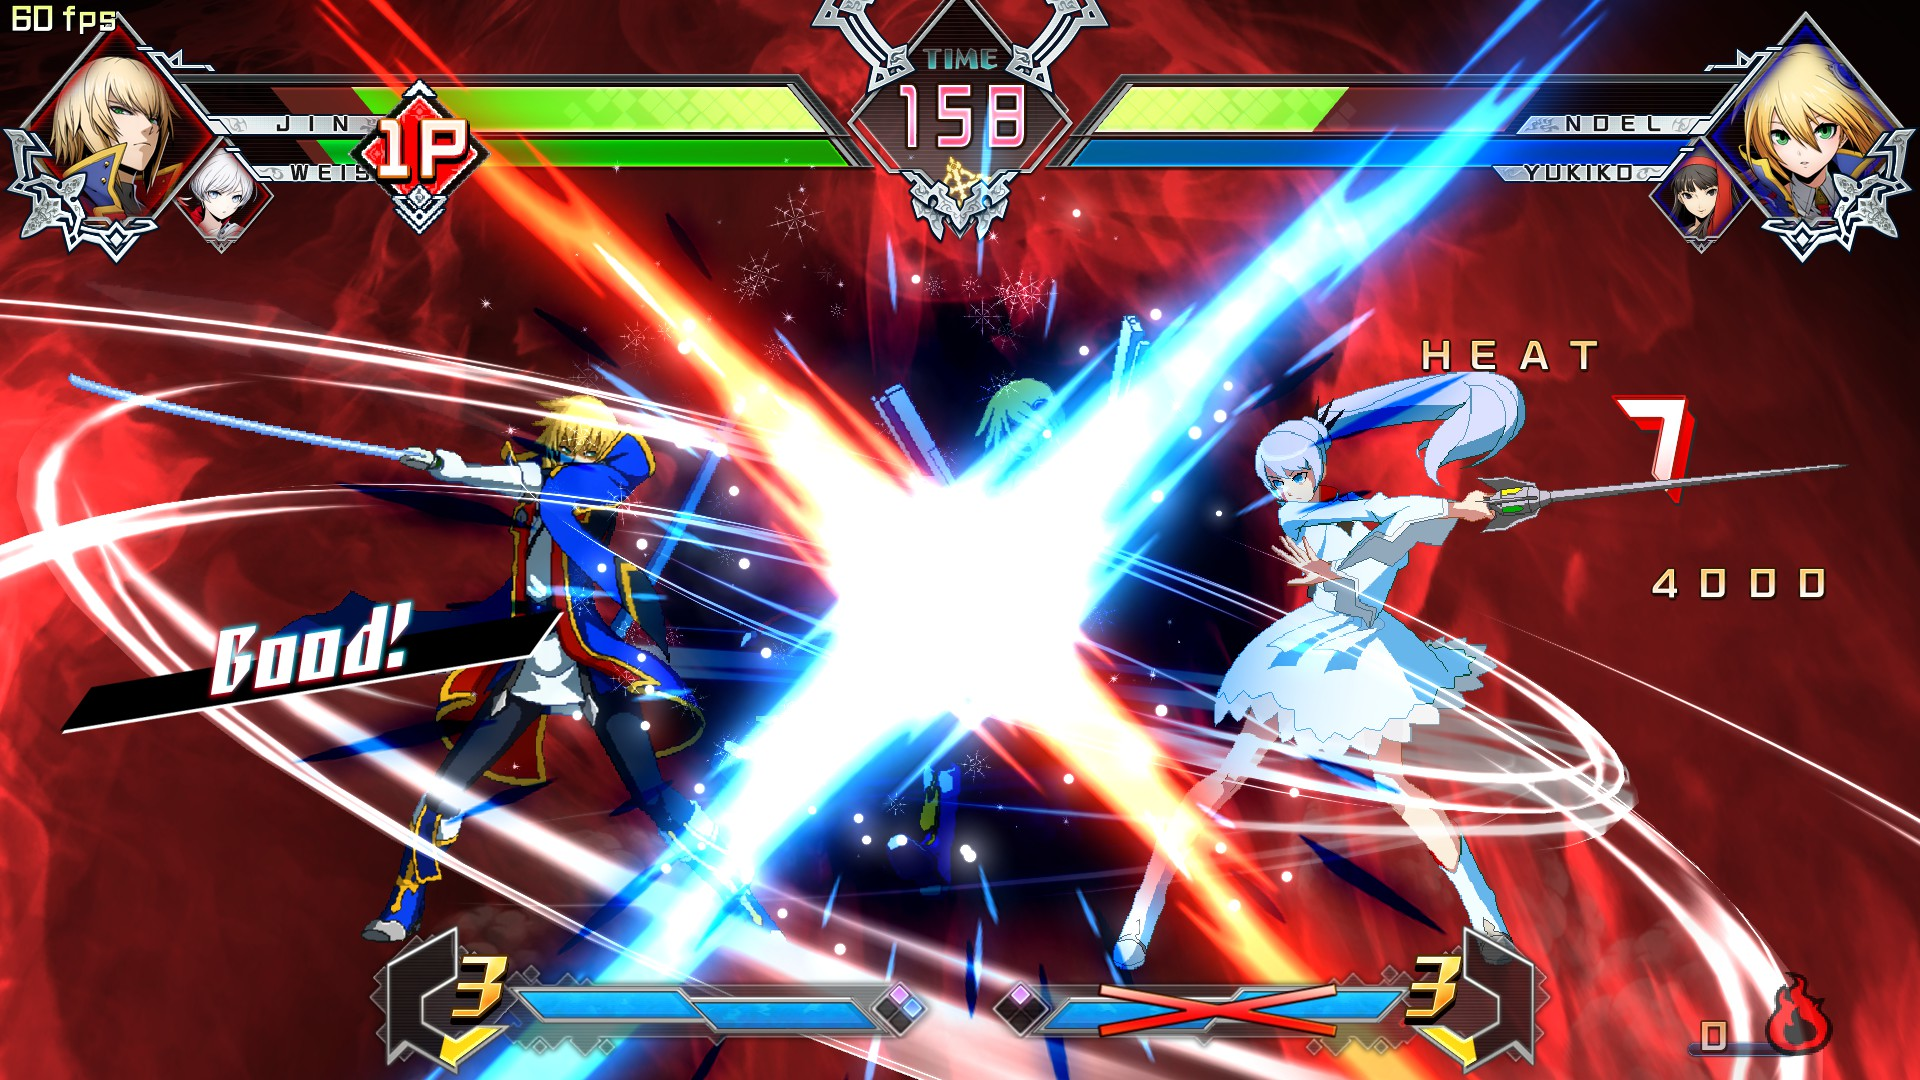 blazblue-cross-tag-battle-02-arc-system-works